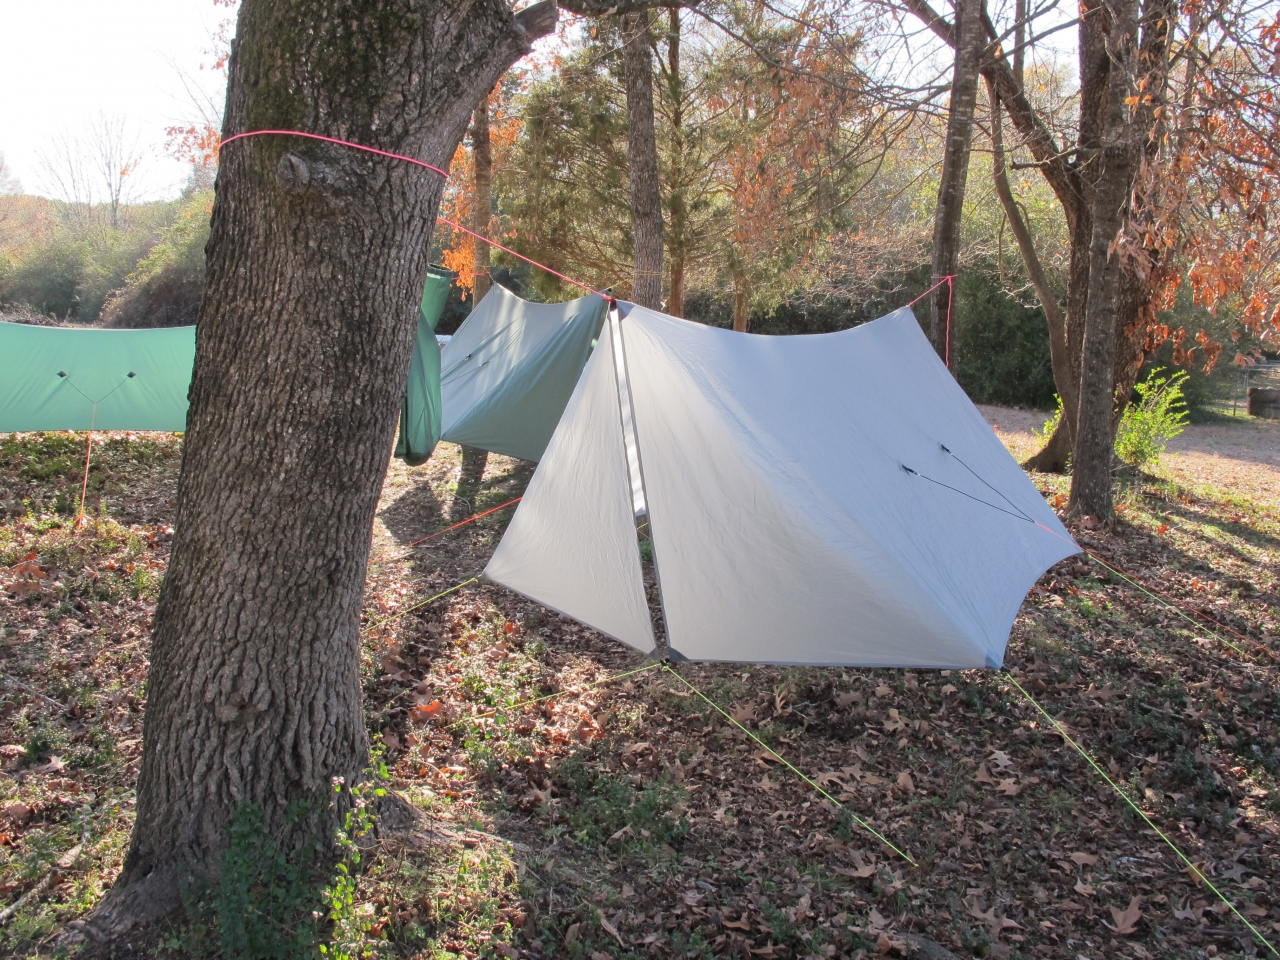 Several Diy Tarps I Made